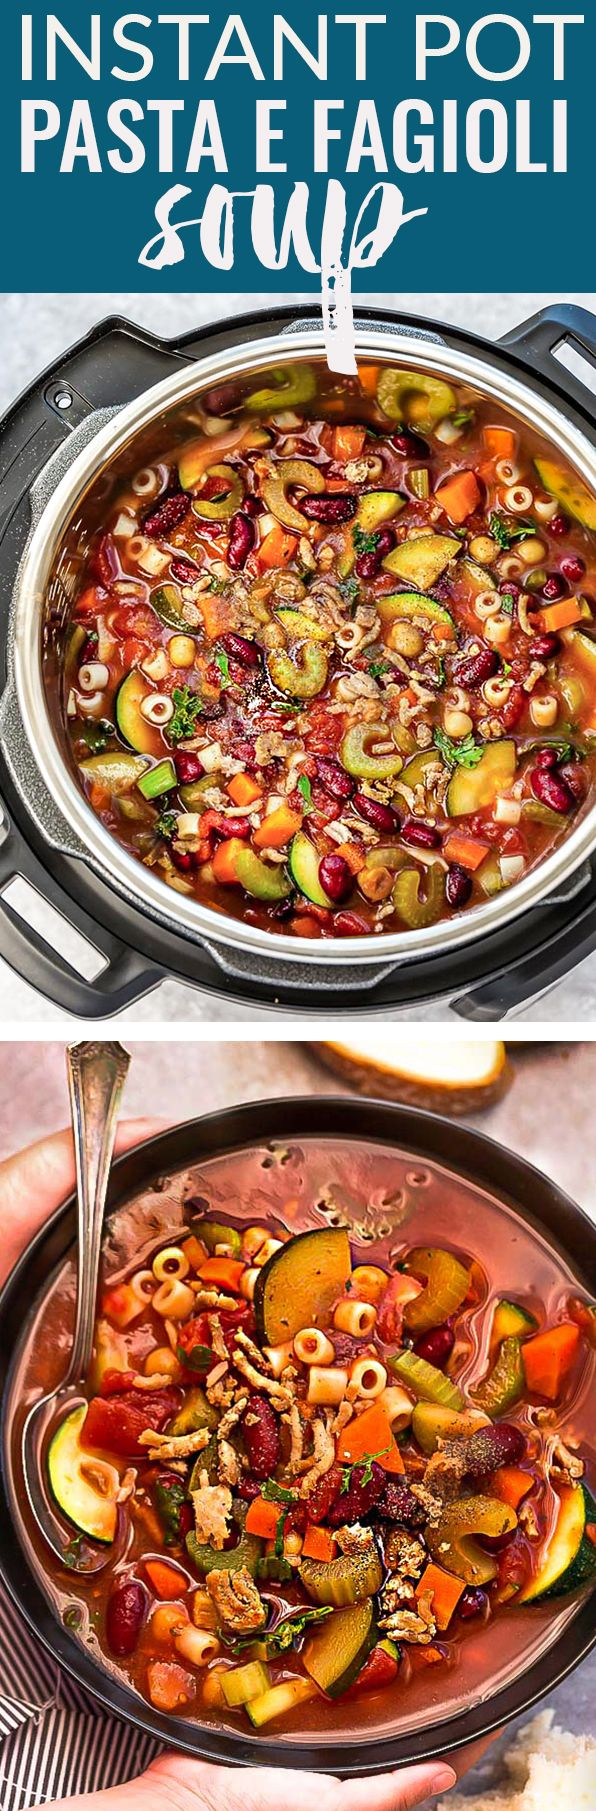 This Instant Pot Slow Cooker Pasta e Fagioli Soup is a lightened up and hearty stick-to-your-ribs recipe perfect for a chilly day. Best of all, this healthy copy-cat for Olive Garden's Pasta e Fagioli is just as delicious with options to make this gluten free. Comes together easily in your pressure cooker (plus stovetop diretions) and can be made ahead of time for meal prep! #soup #olivegarden #copycat #pasta #pastaefagioli #recipe #olivegardencopycat #glutenfree #healthy #instantpot